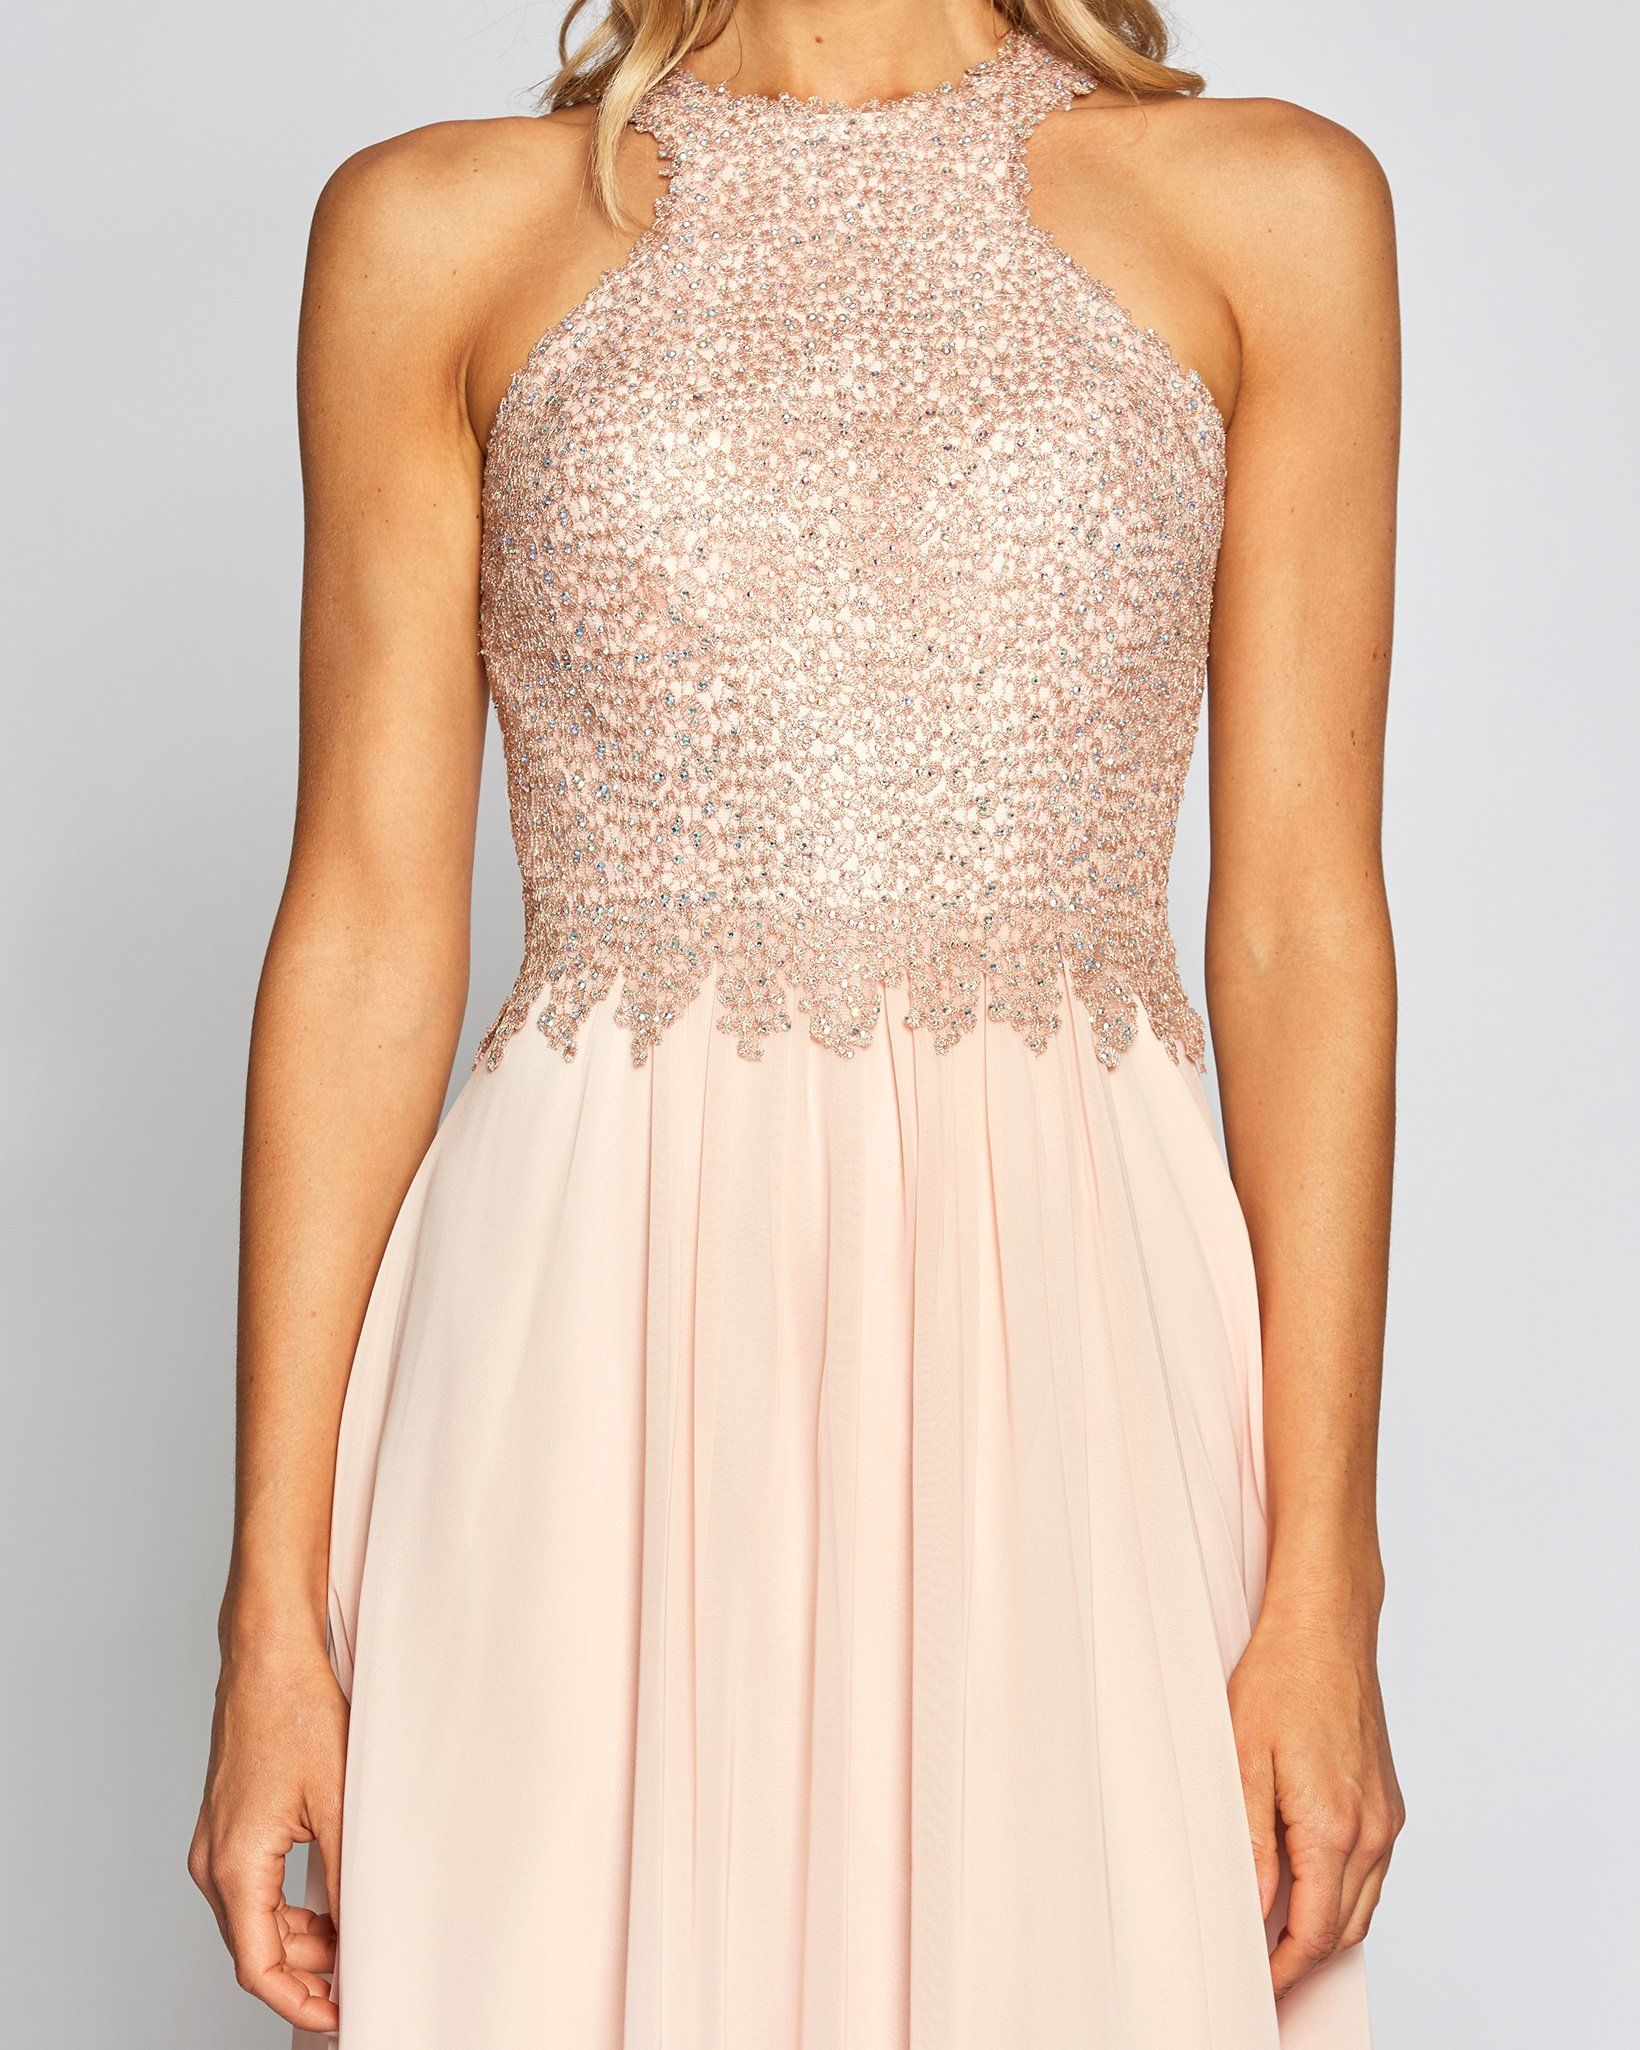 Lady Pink Halter Top Dress